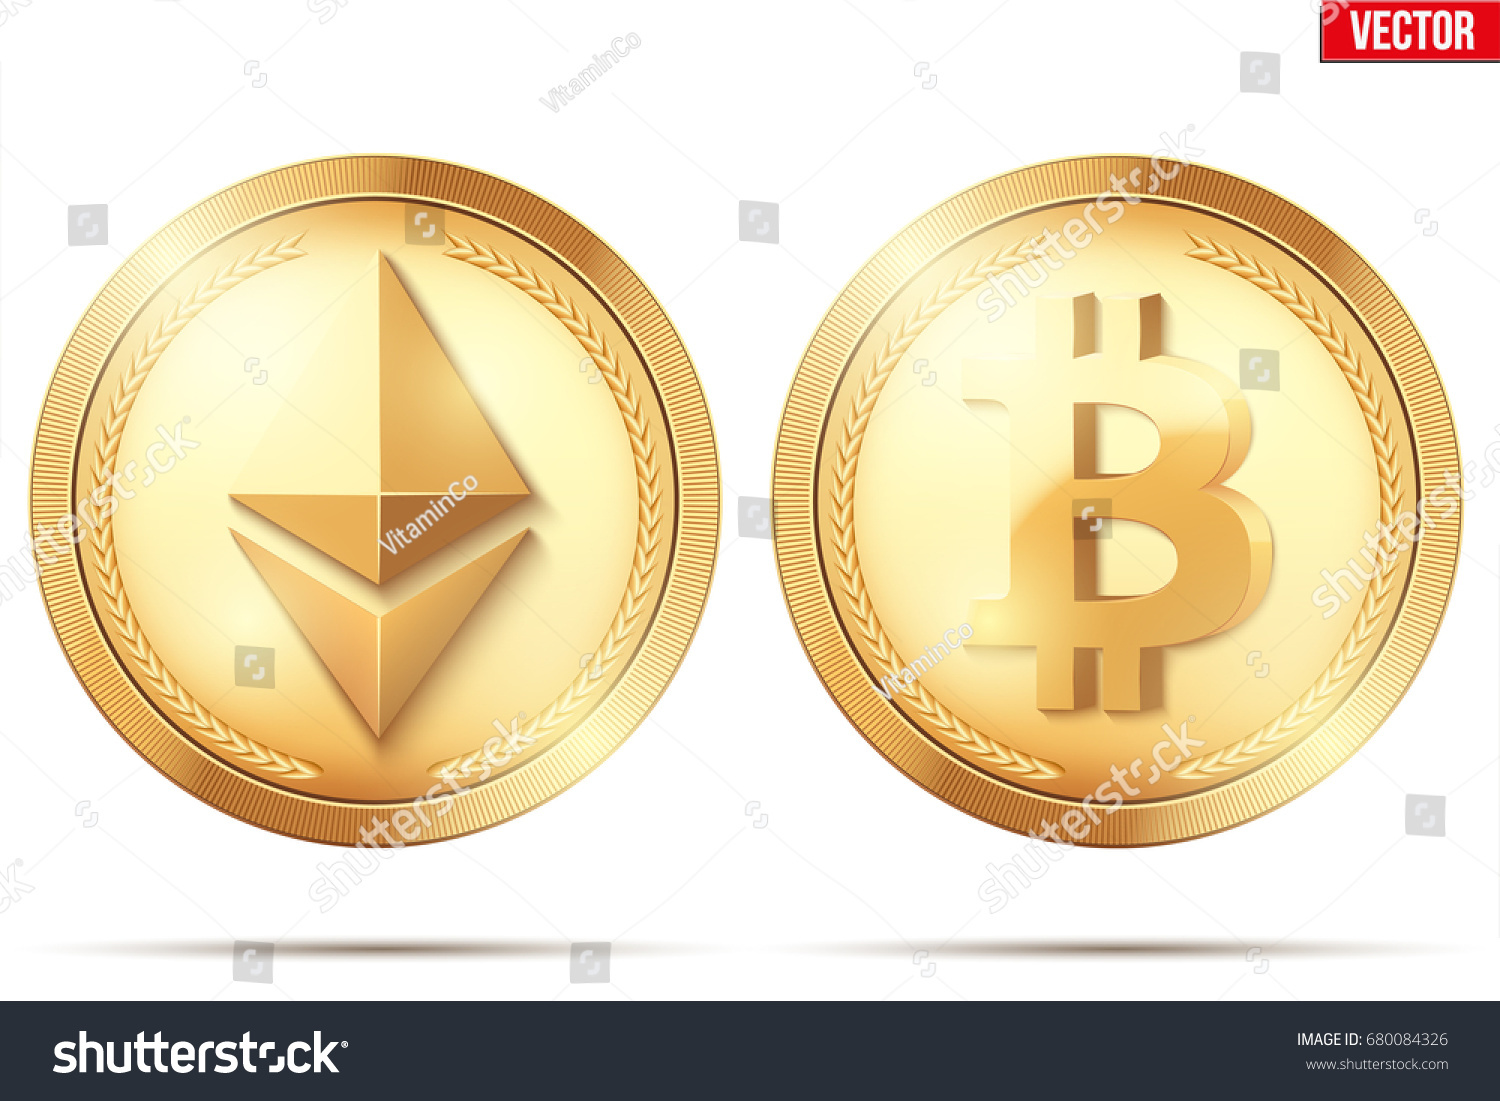 Cryptocurrency blank coins best way to buy bitcoin and ethereum cryptocurrency blank coins best way to buy bitcoin and ethereum ccuart Images